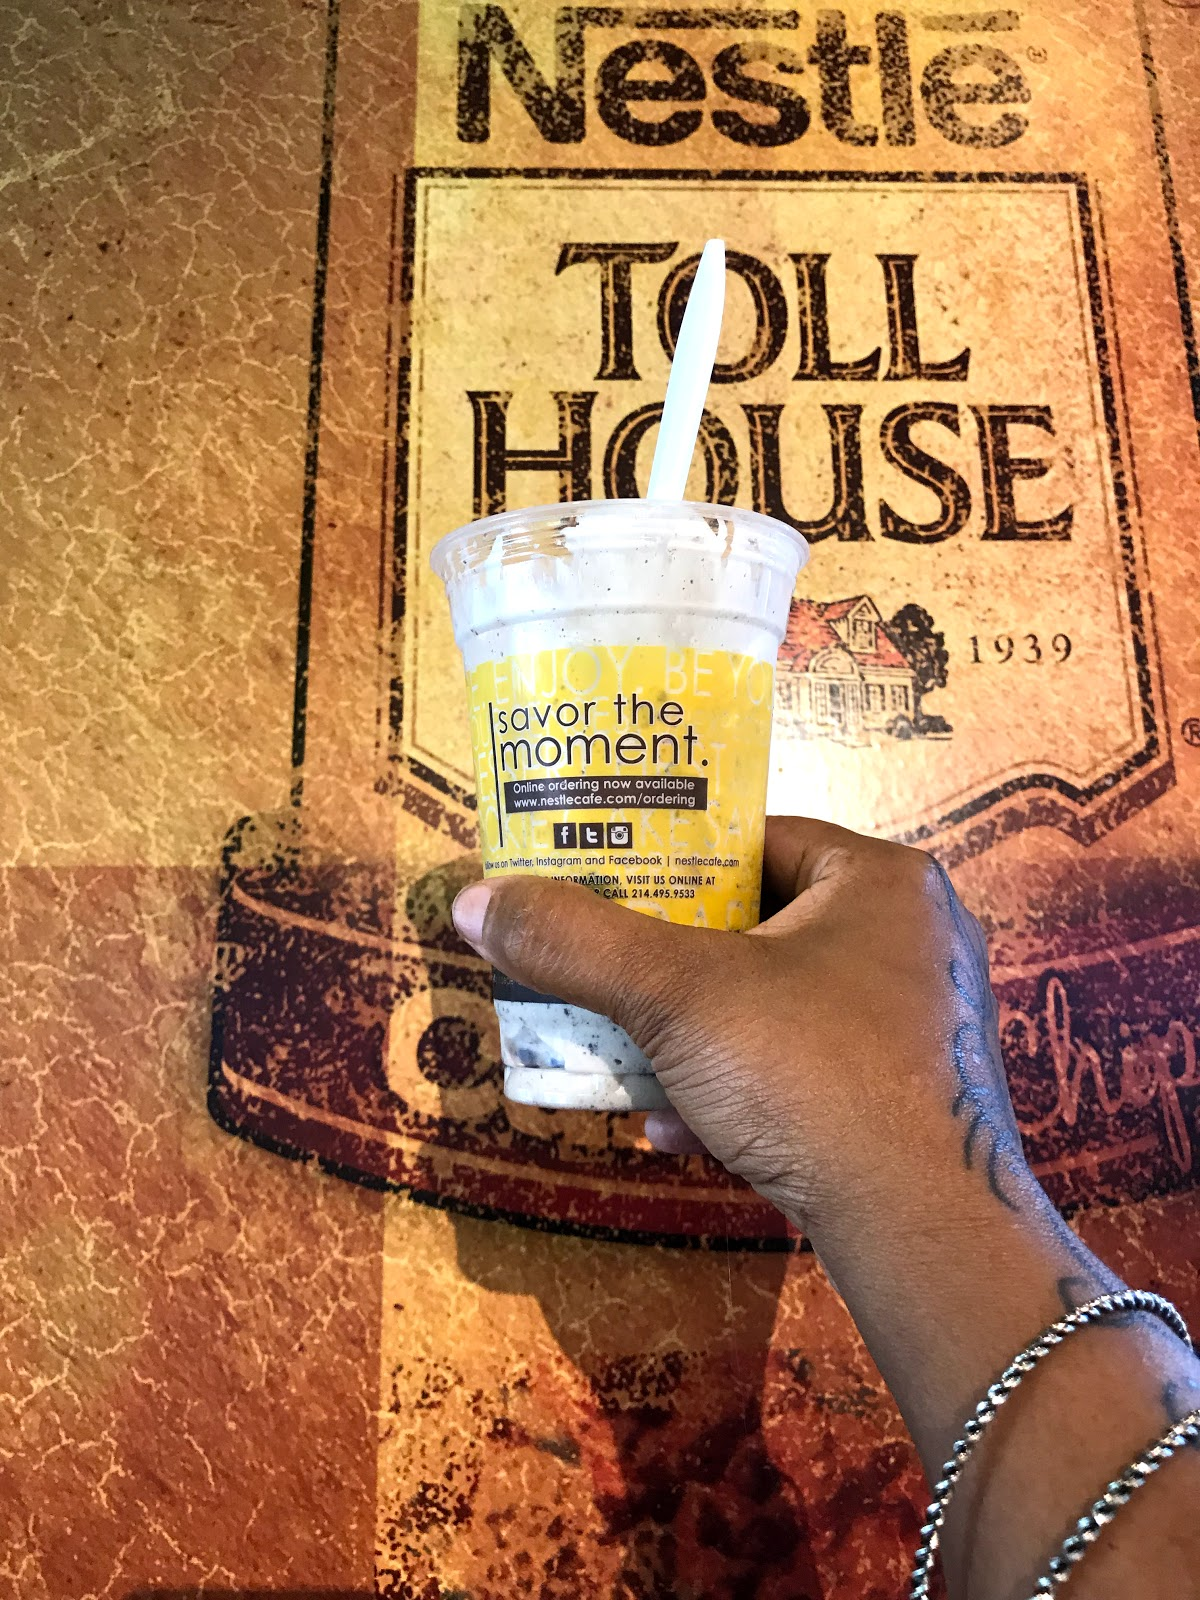 Image: Woman Sharing Toll House Ice Cream On Bits and Babbles, Blog Weekend Bits and Favorites